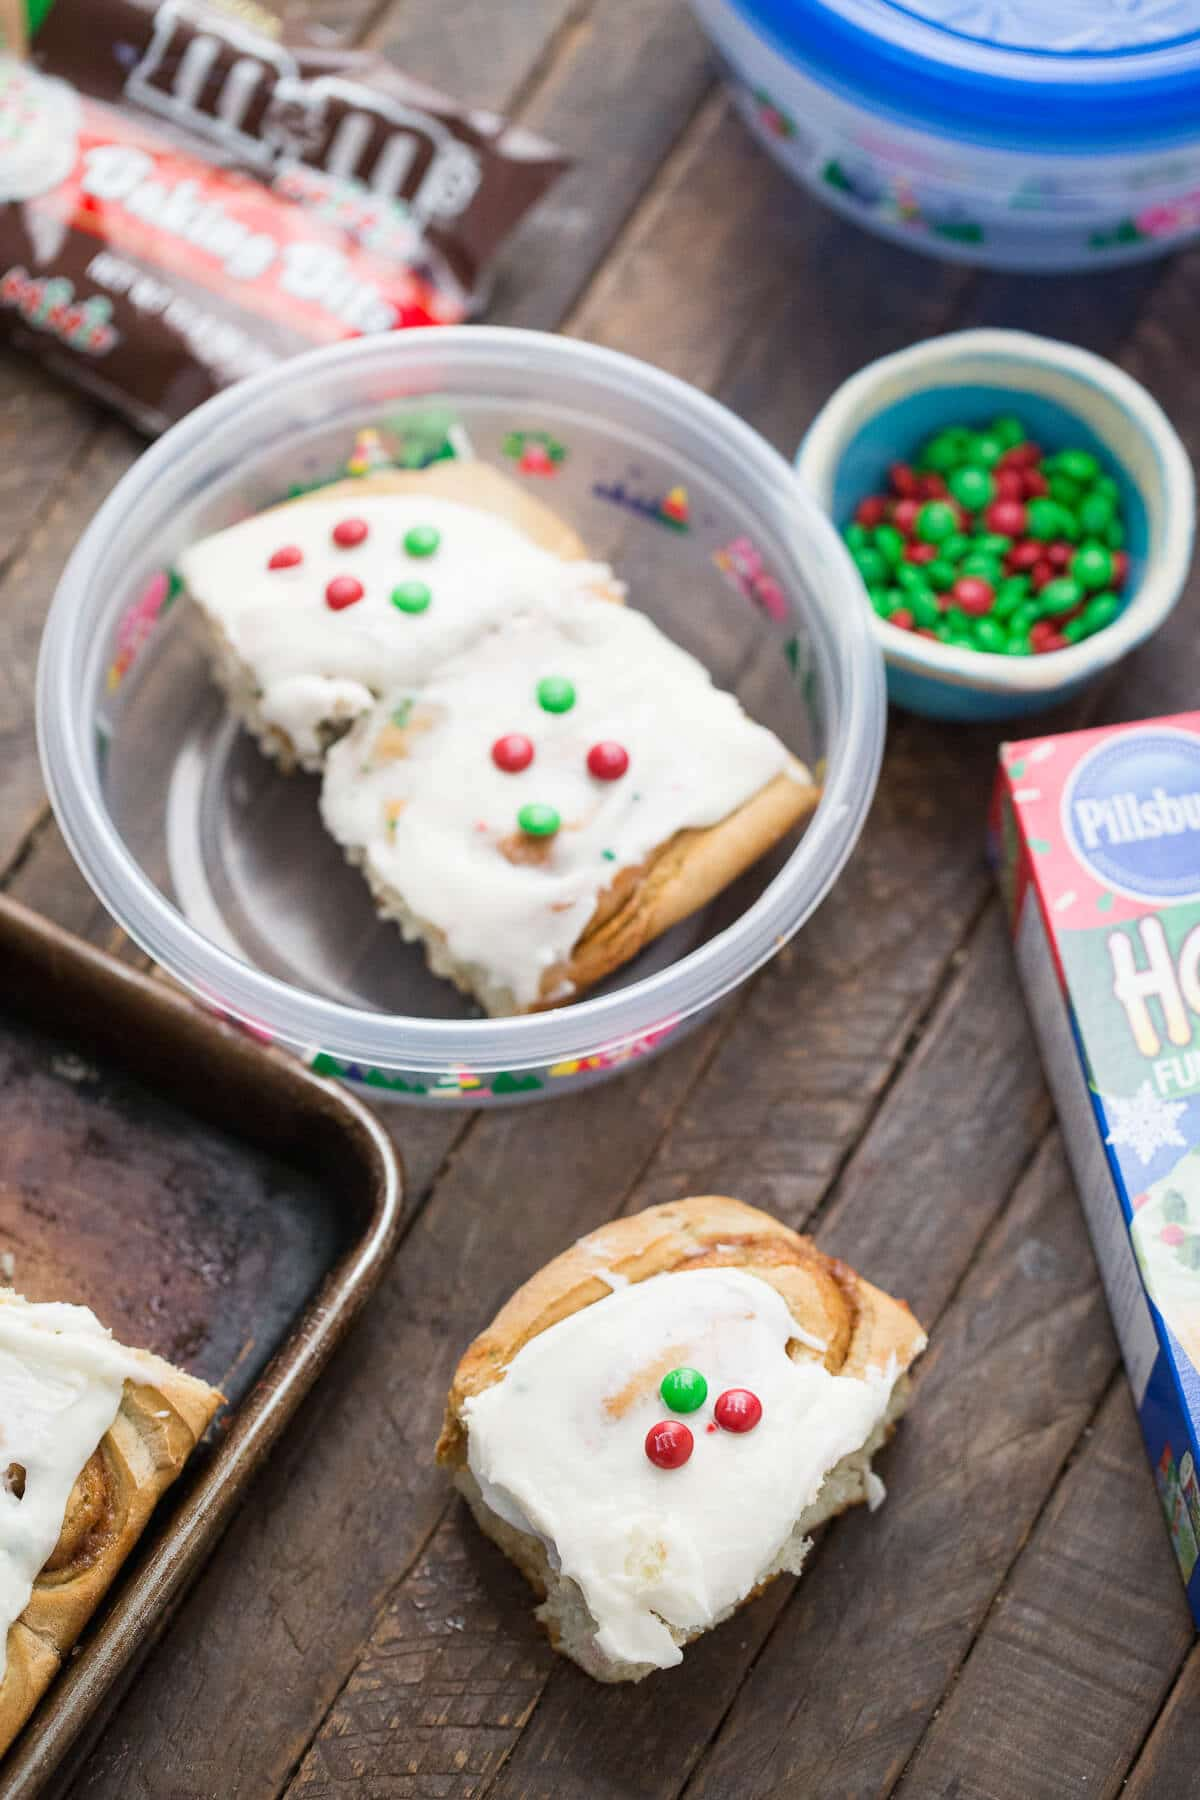 Brighten your mornings with these festive and delicious cake mix cinnamon rolls!